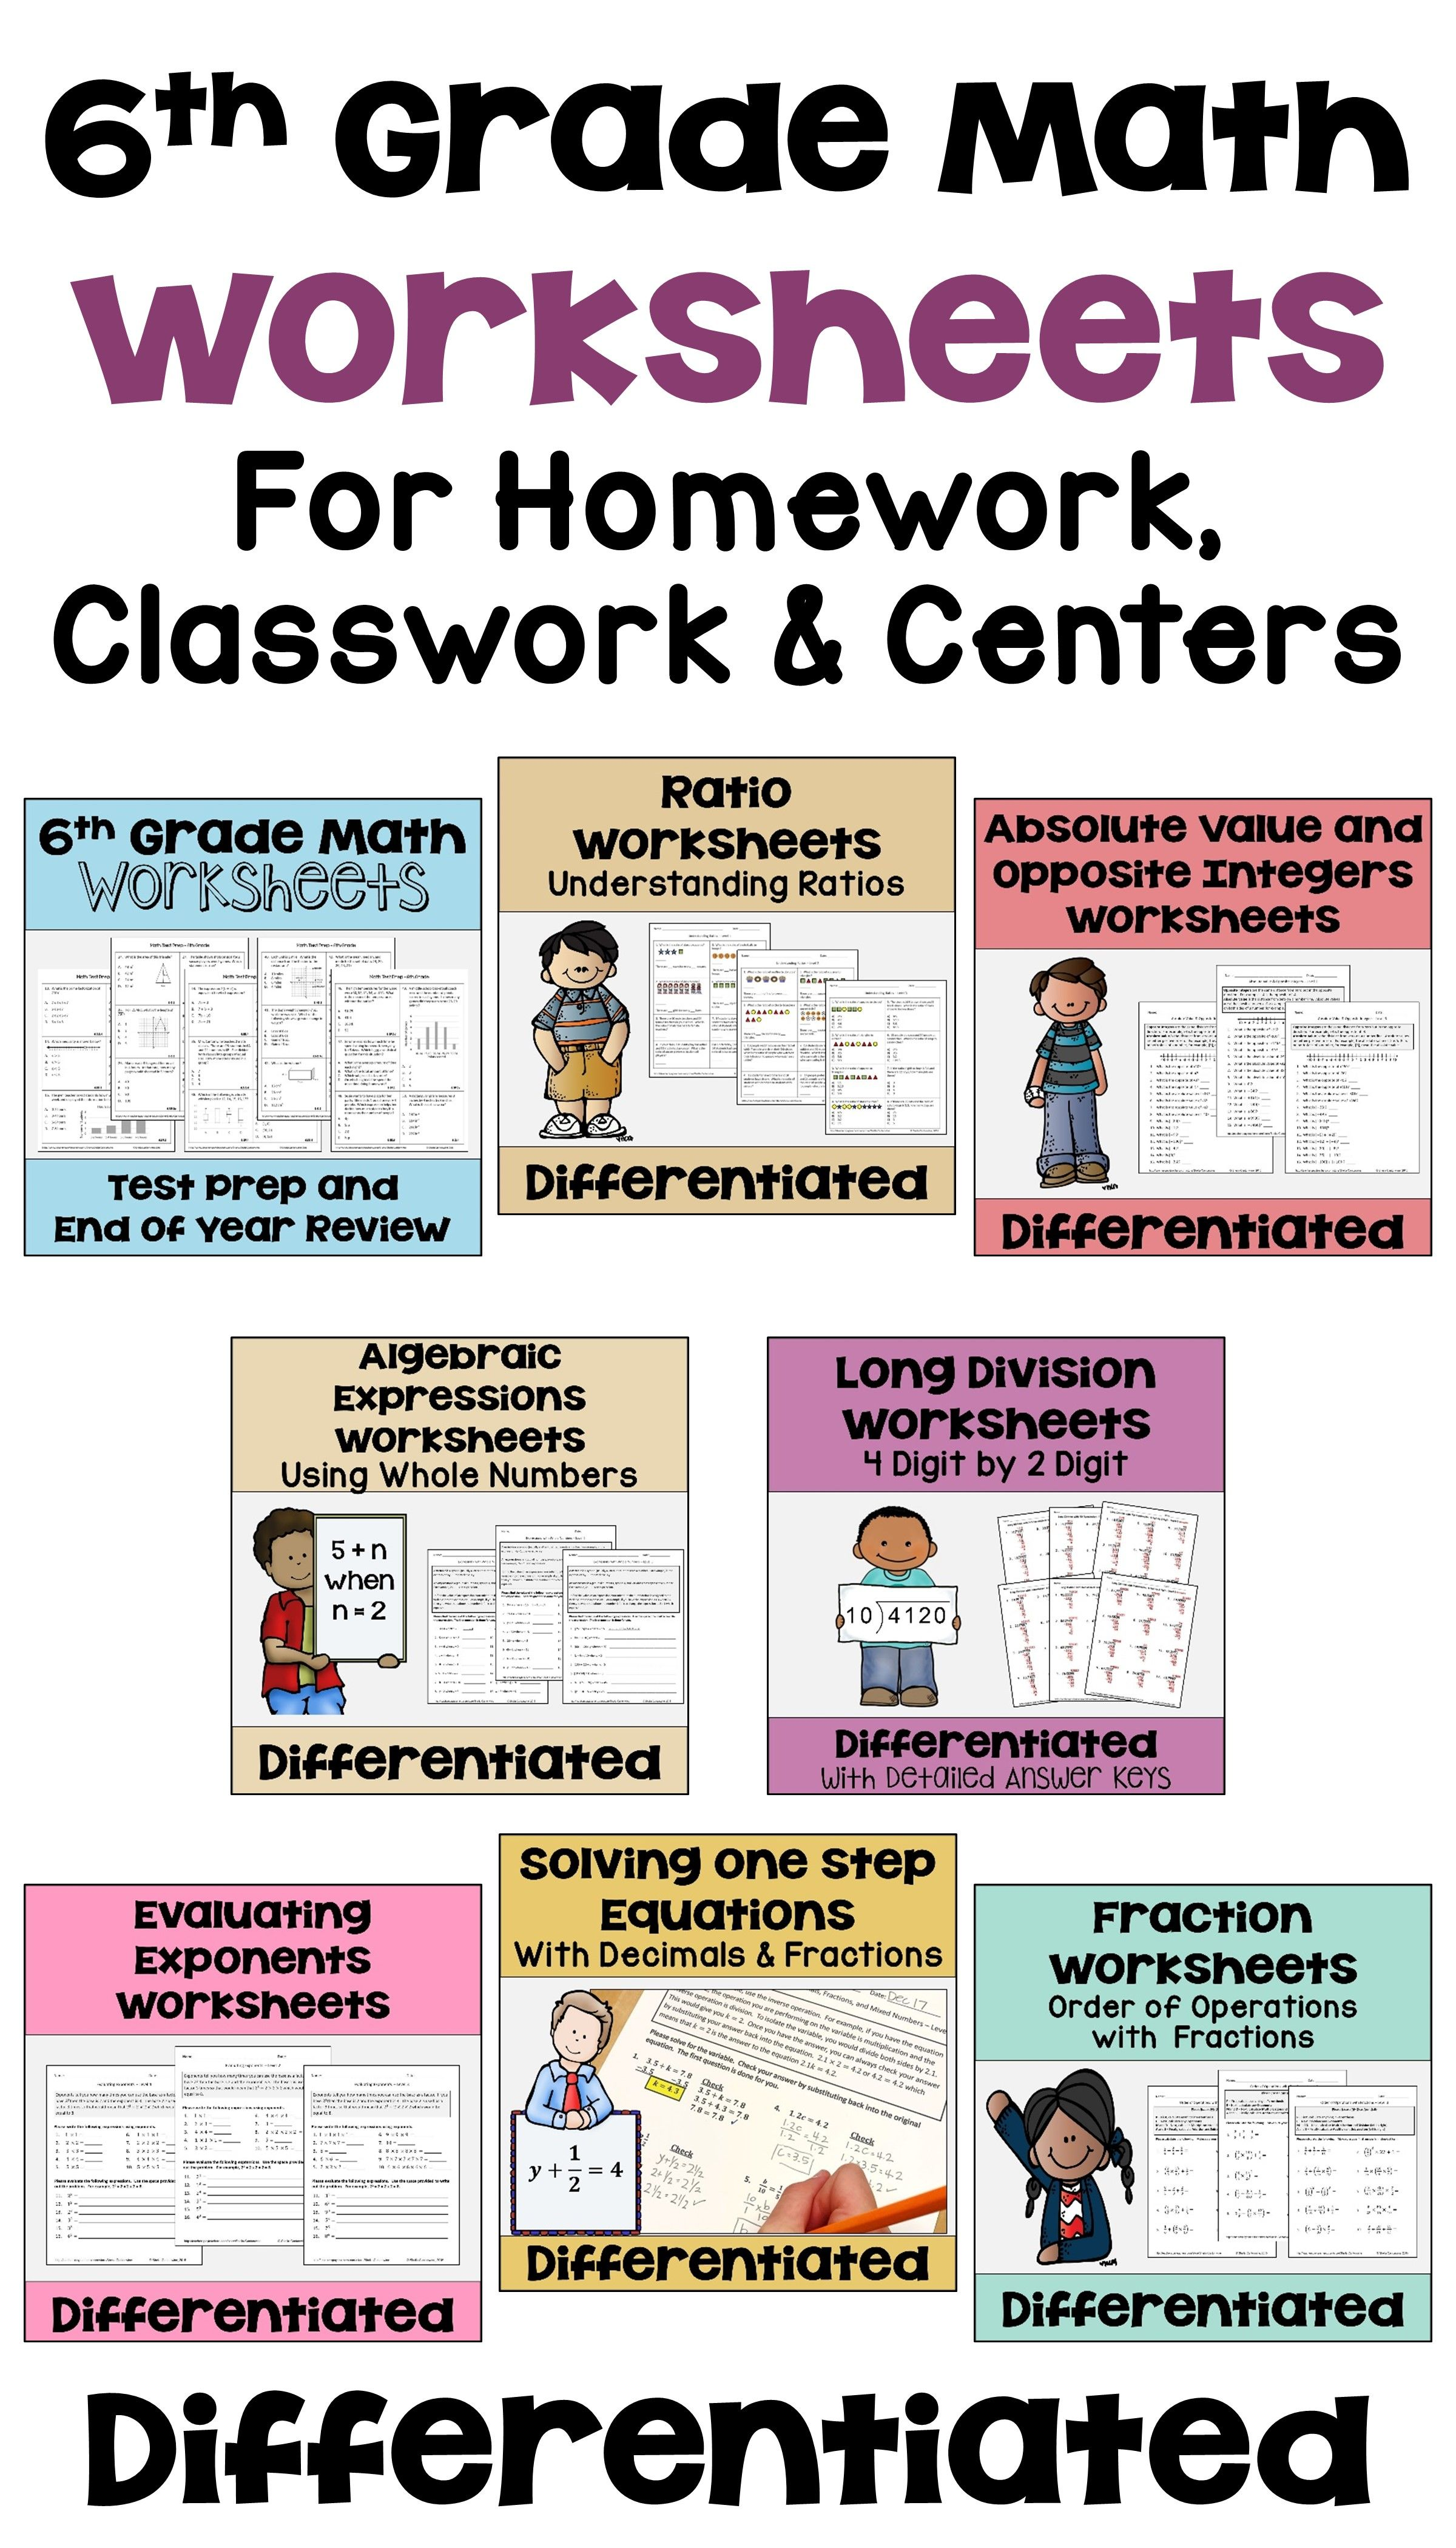 6th Grade Math Differentiated Worksheet Bundle For Math